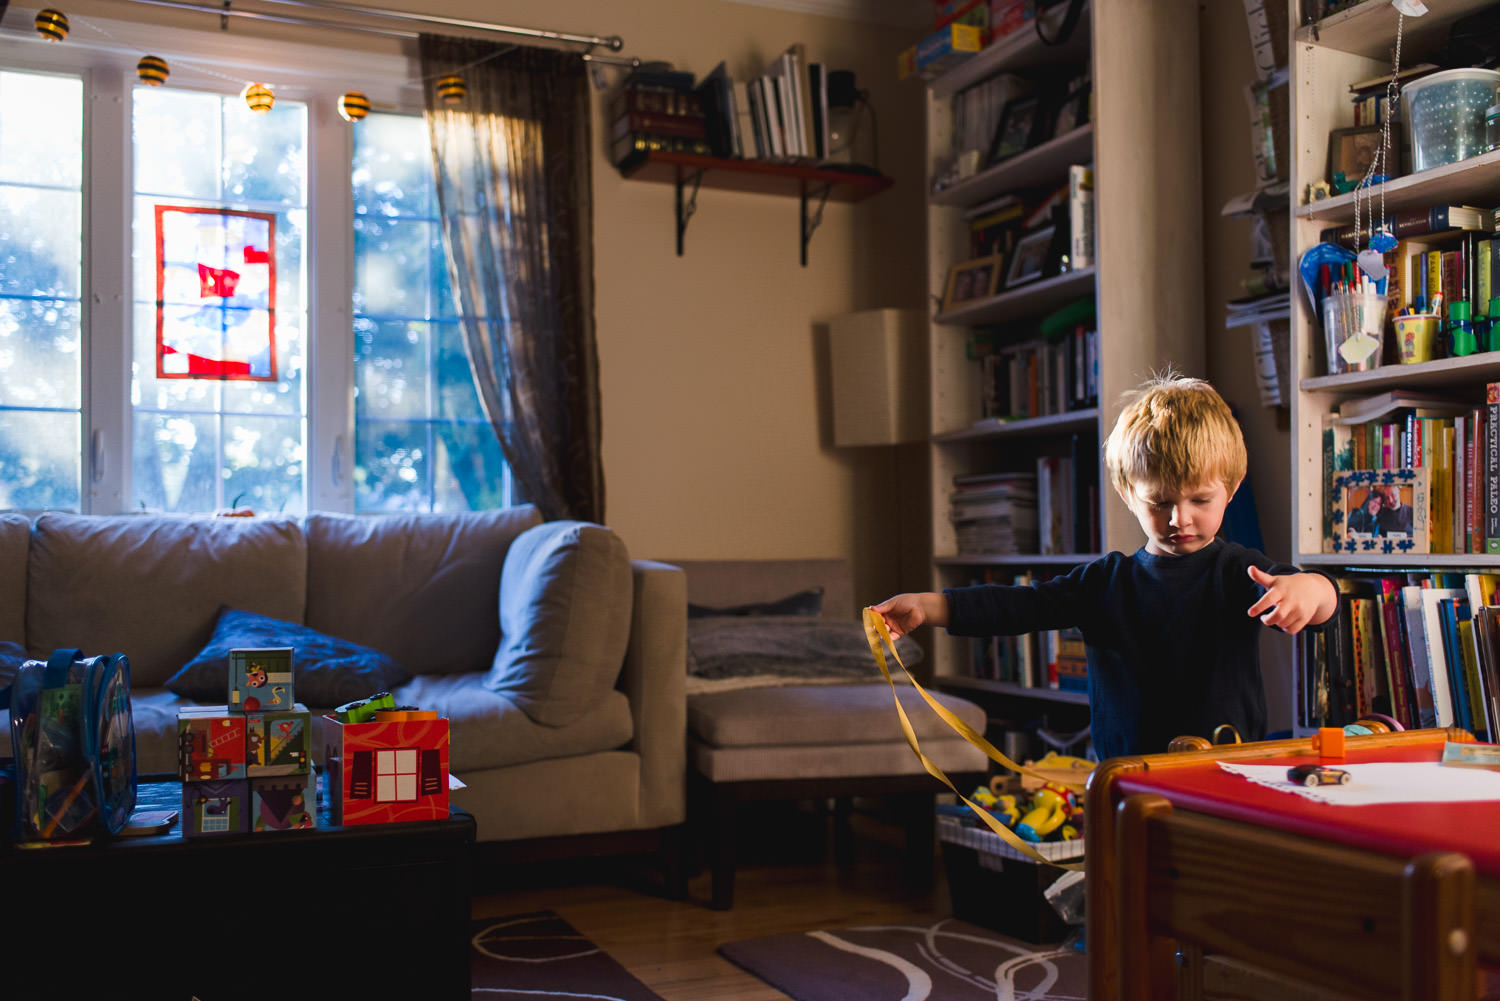 A little boy plays with some ribbon in his living room.